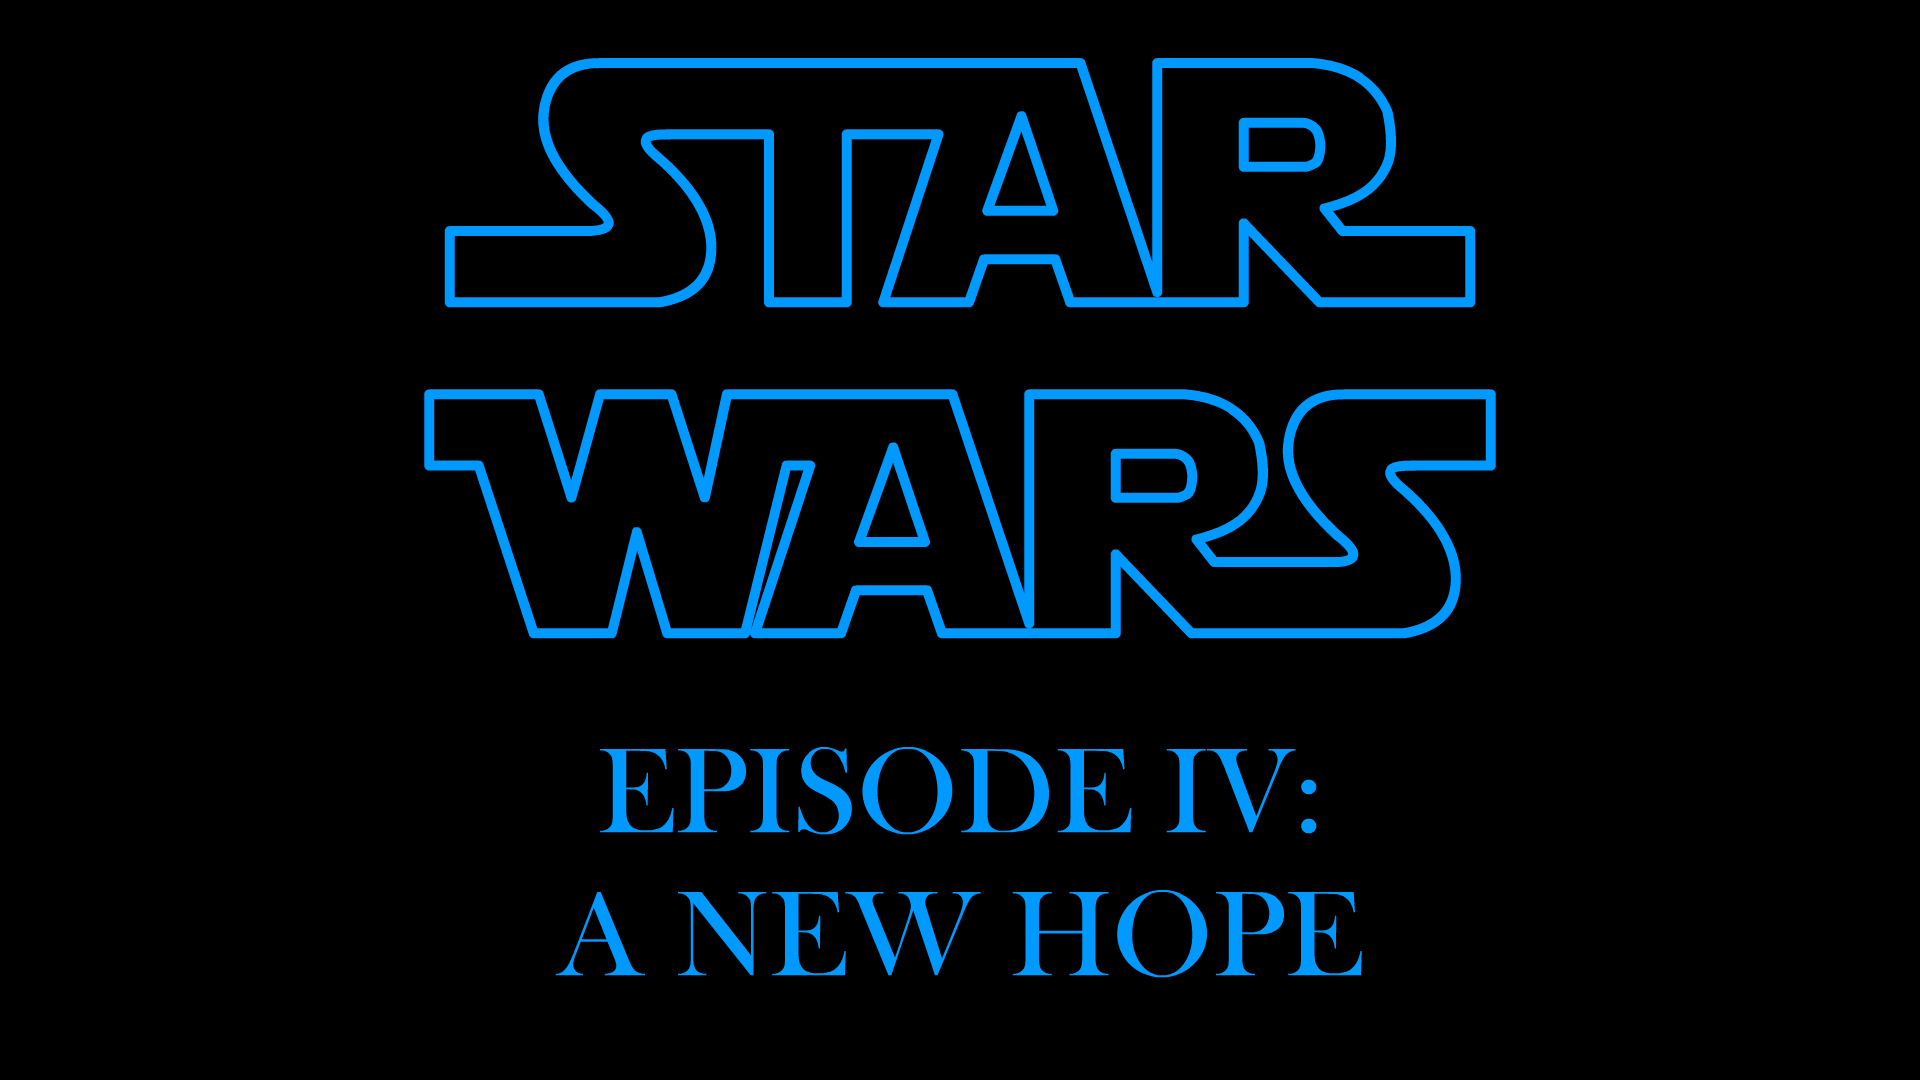 Star Wars Episode Iv A New Hope Title Logo By Thereuplord On Deviantart